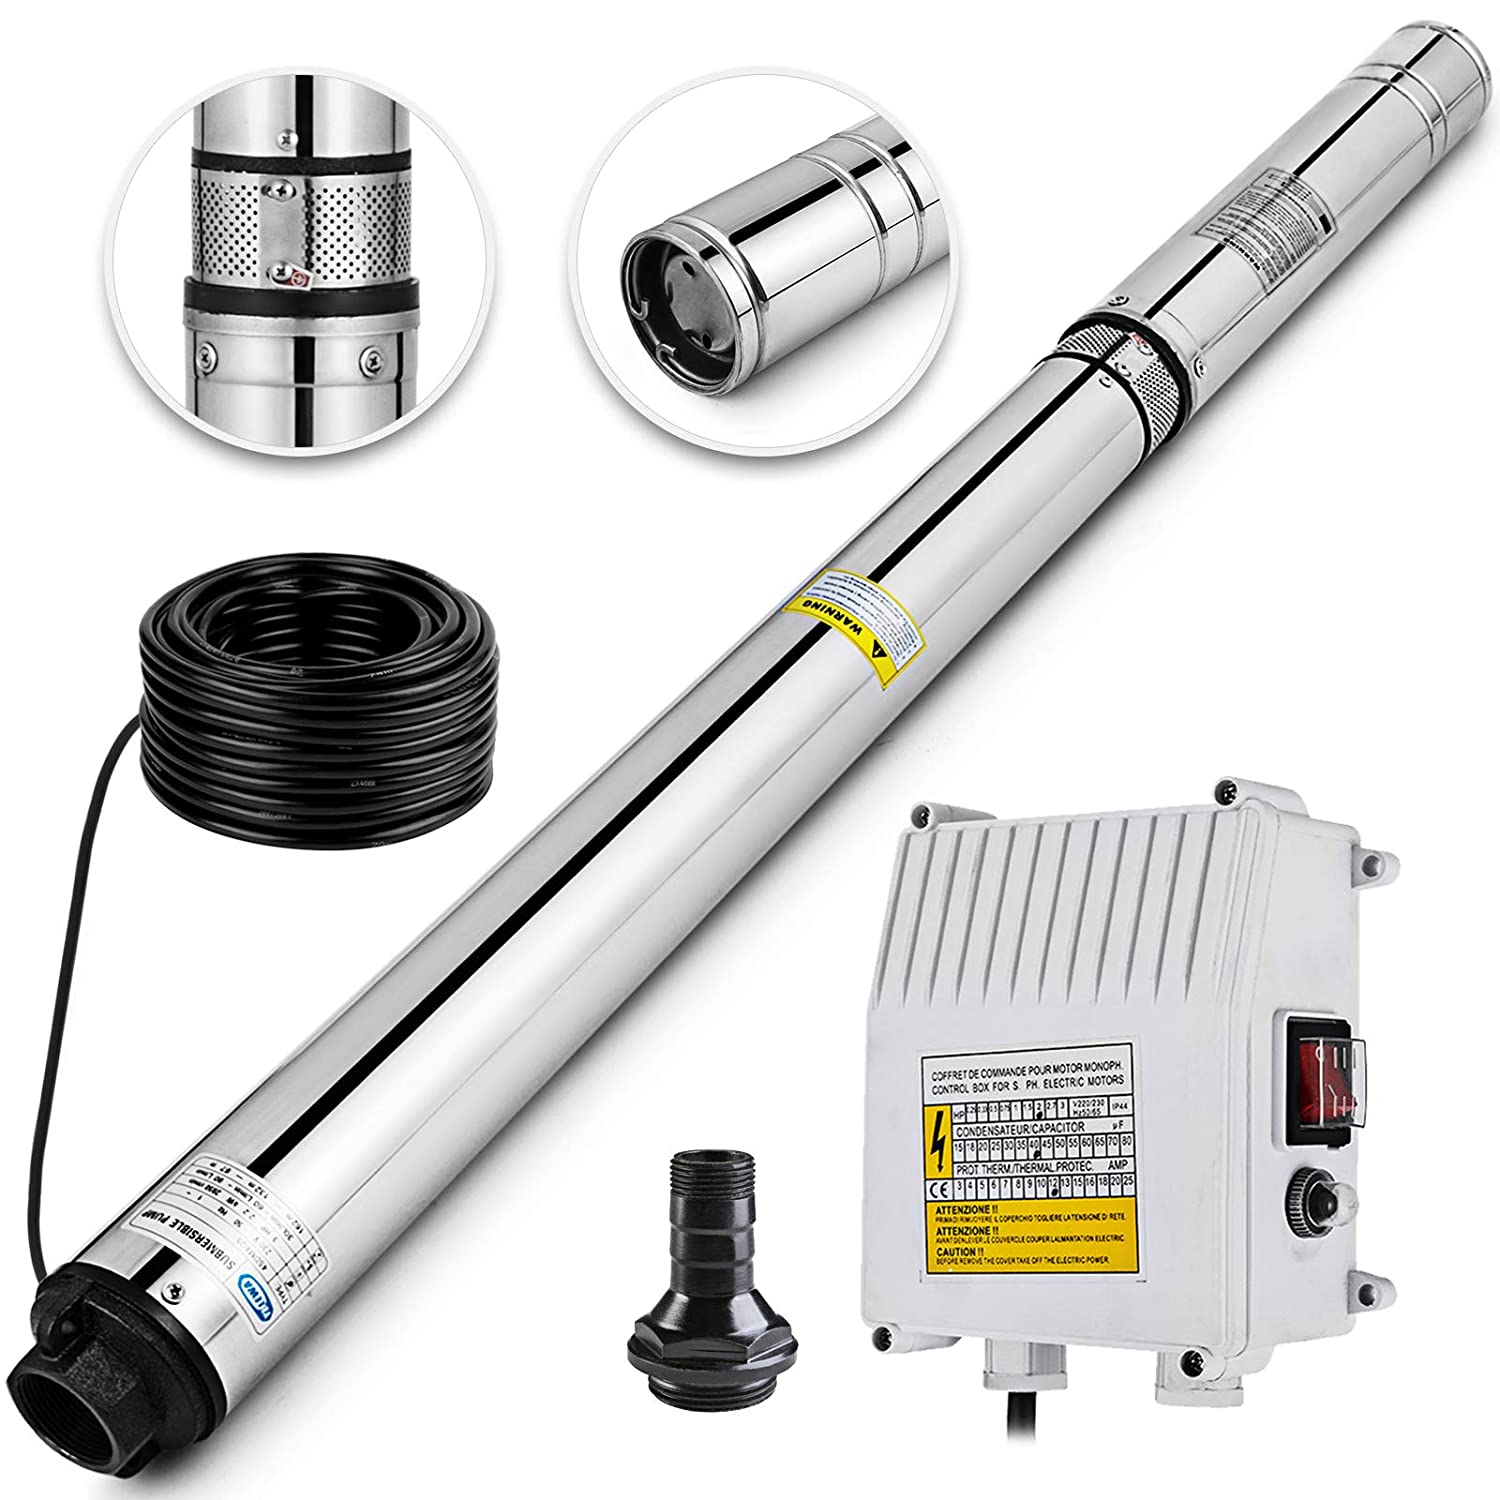 happybuy deep well submersible pump 3hp 220v submersible well pump 630ft  42gpm stainless steel deep well pump for industrial and home use - -  amazon com